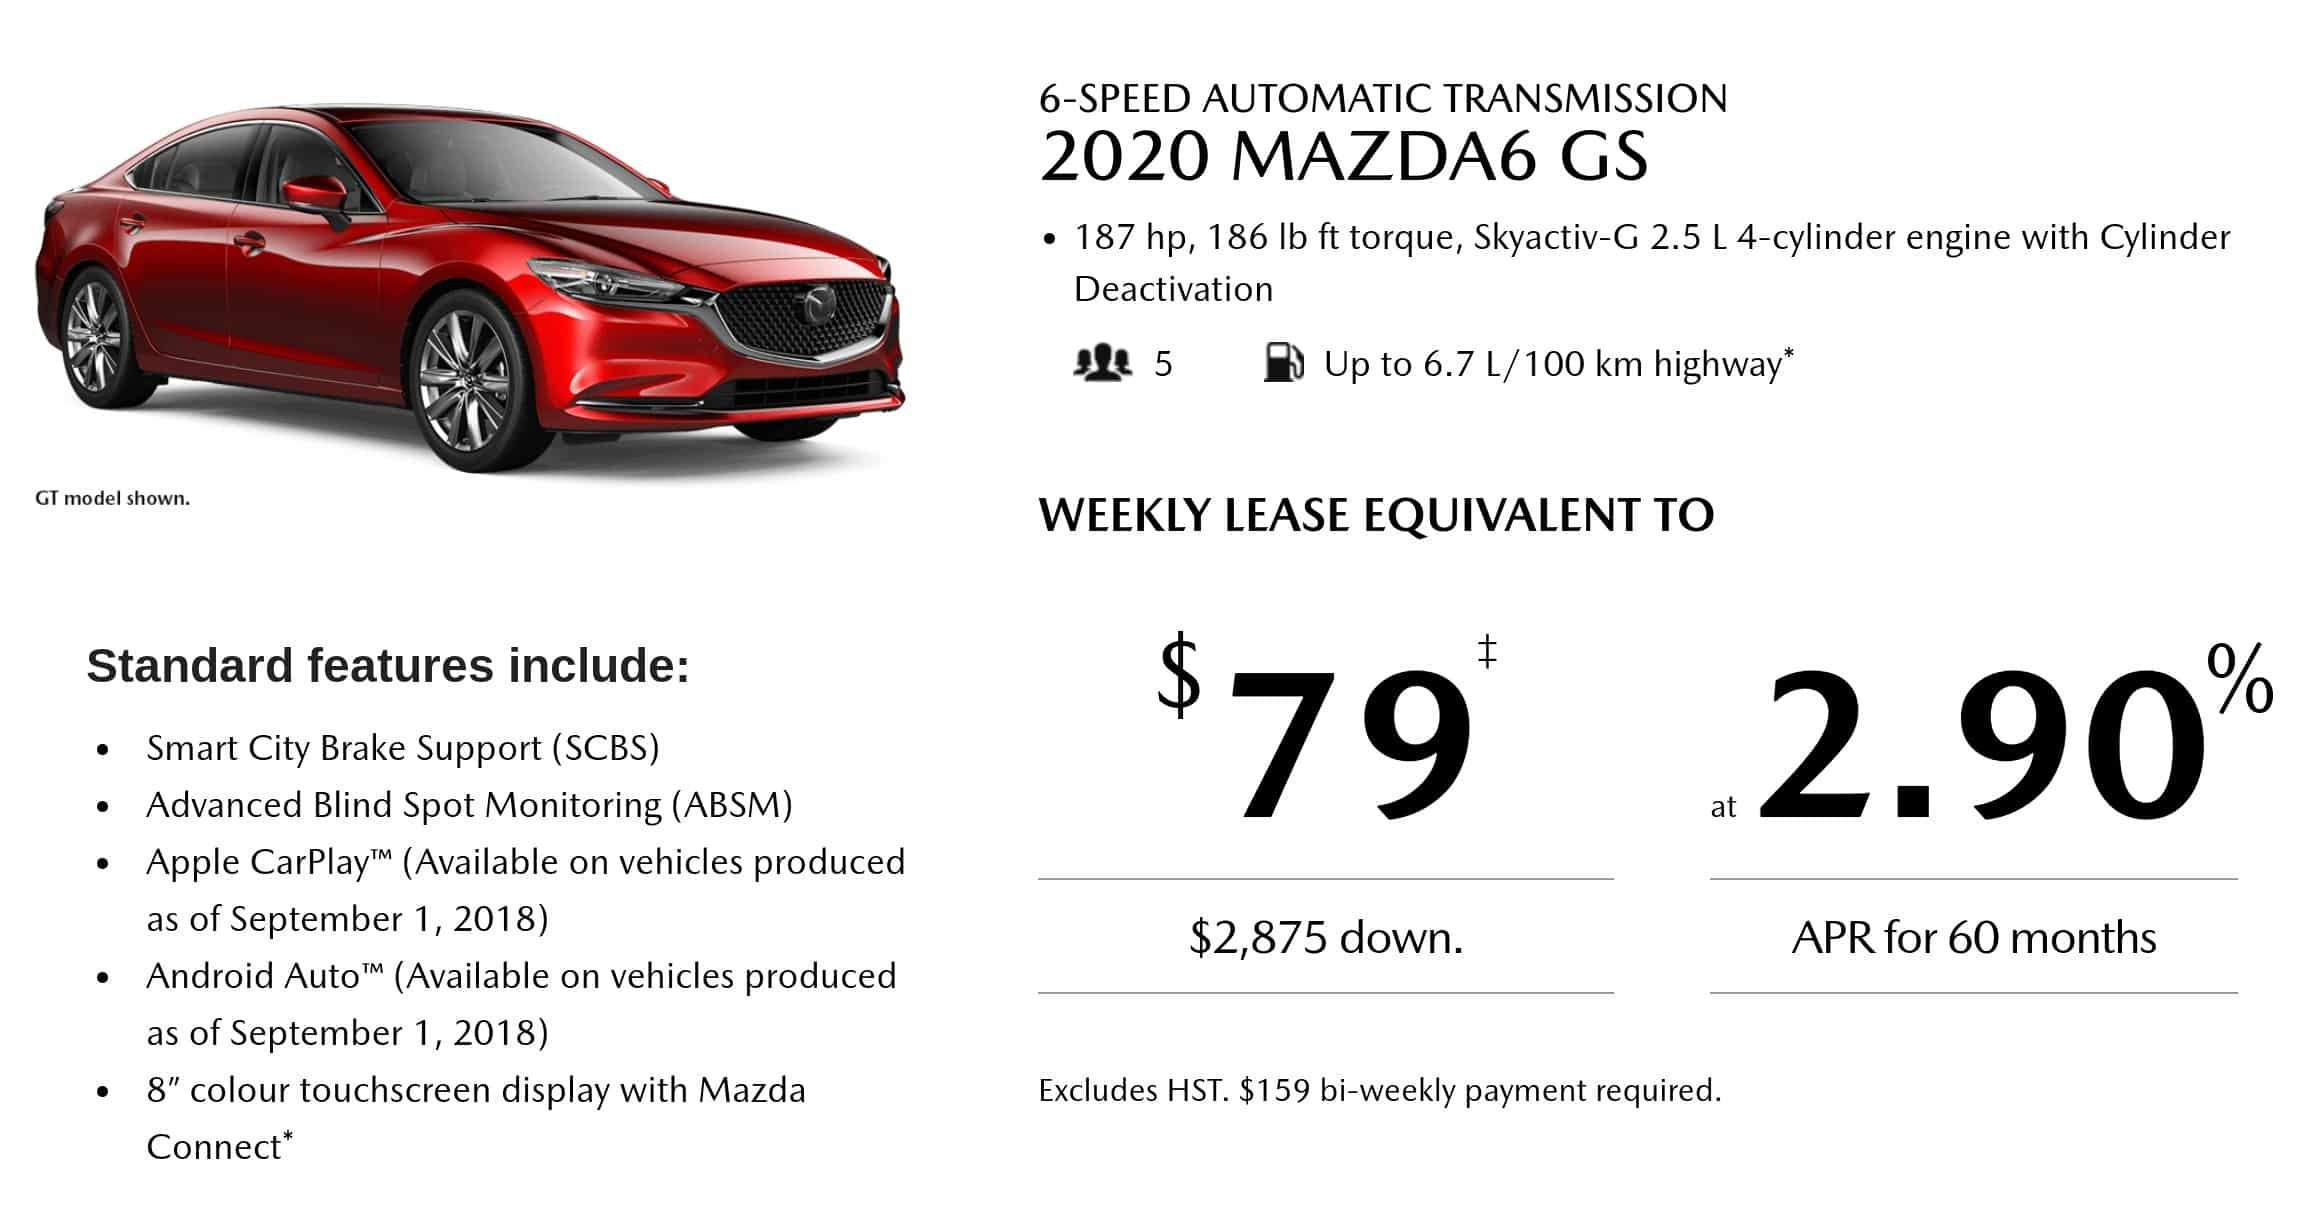 Mazda 6 Special Offers